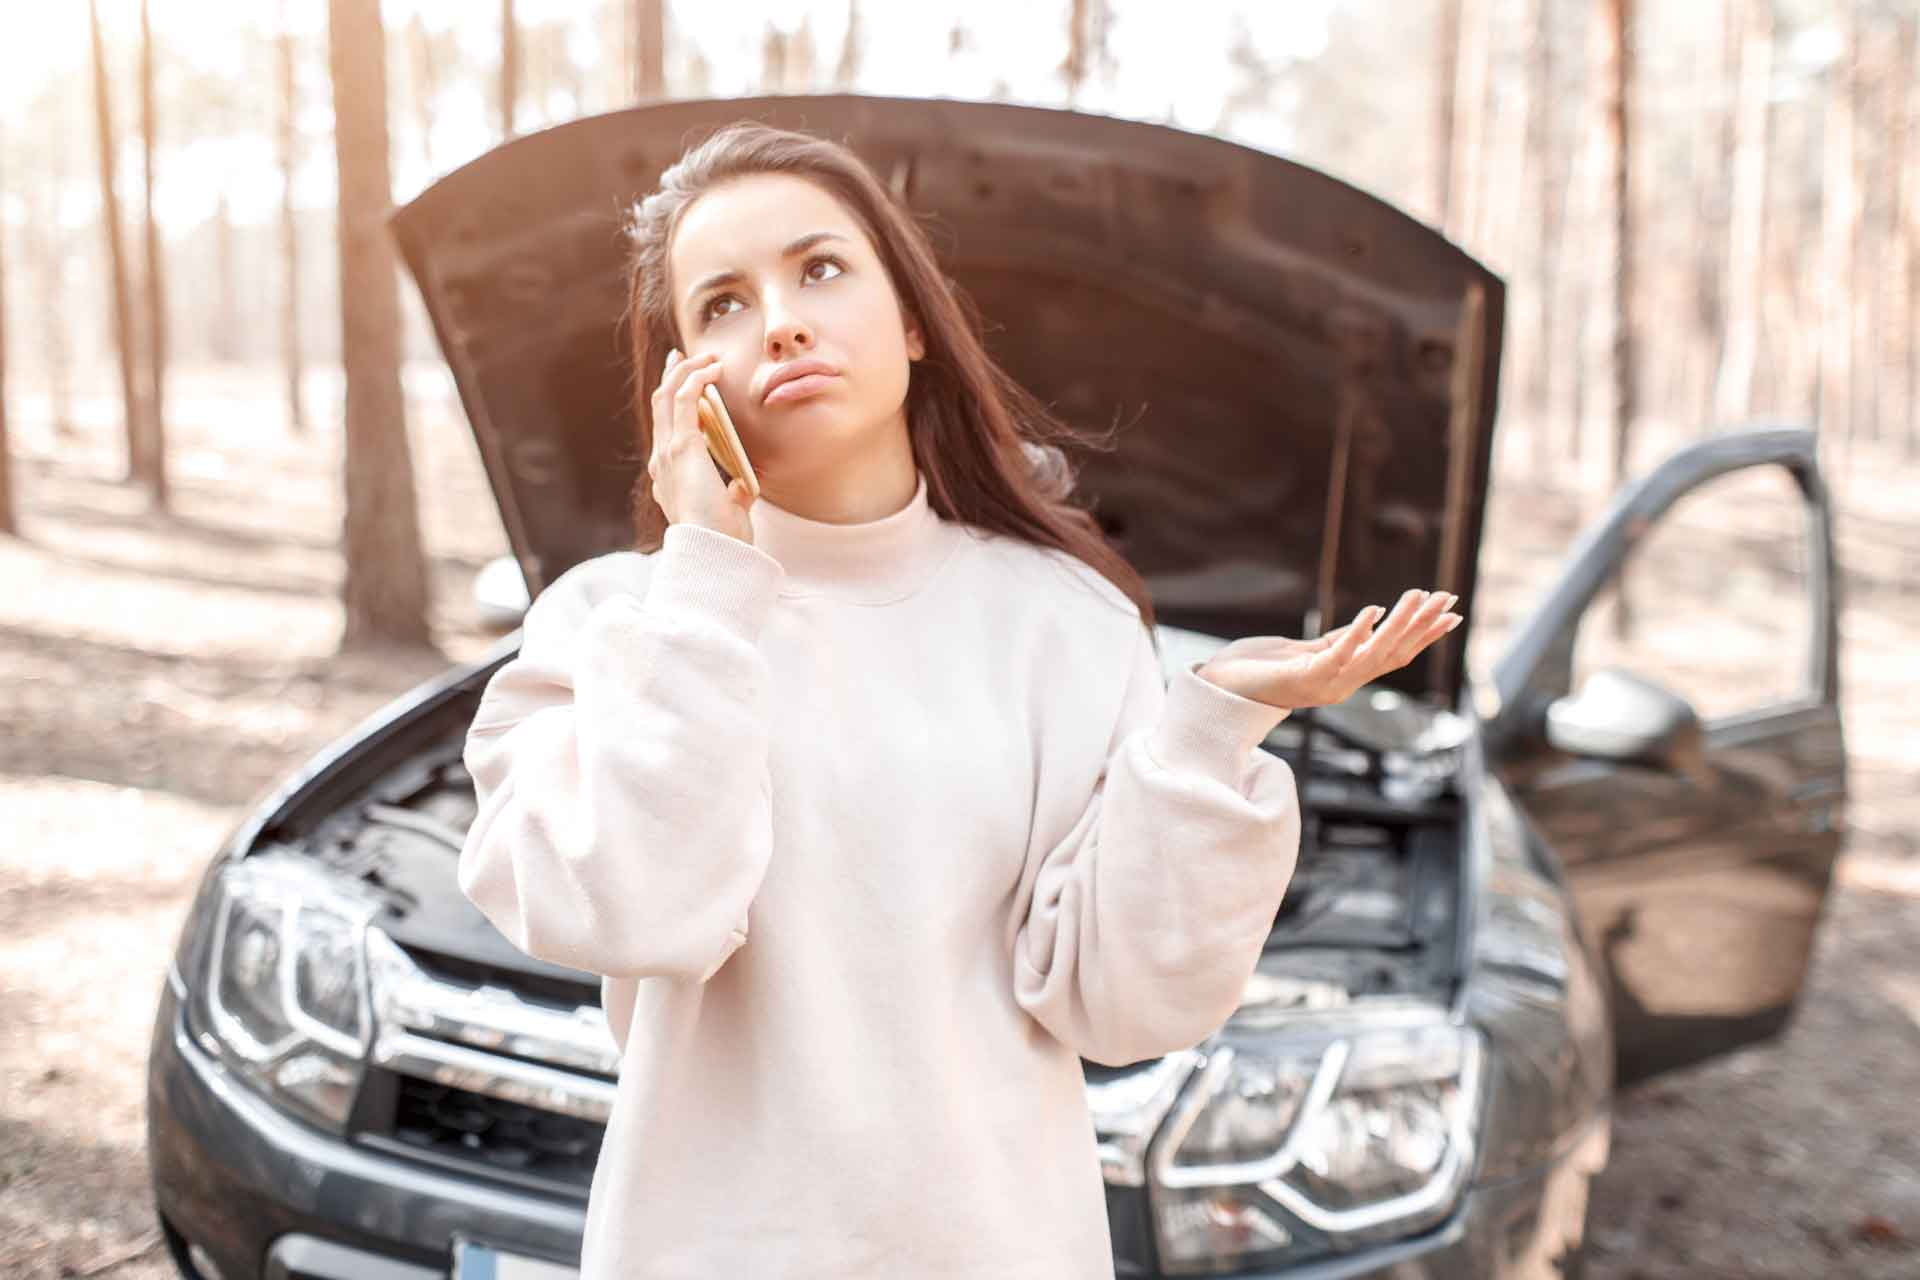 Contact Bowling Green Towing Pros for 24-hour Emergency auto towing service in Bowling Green